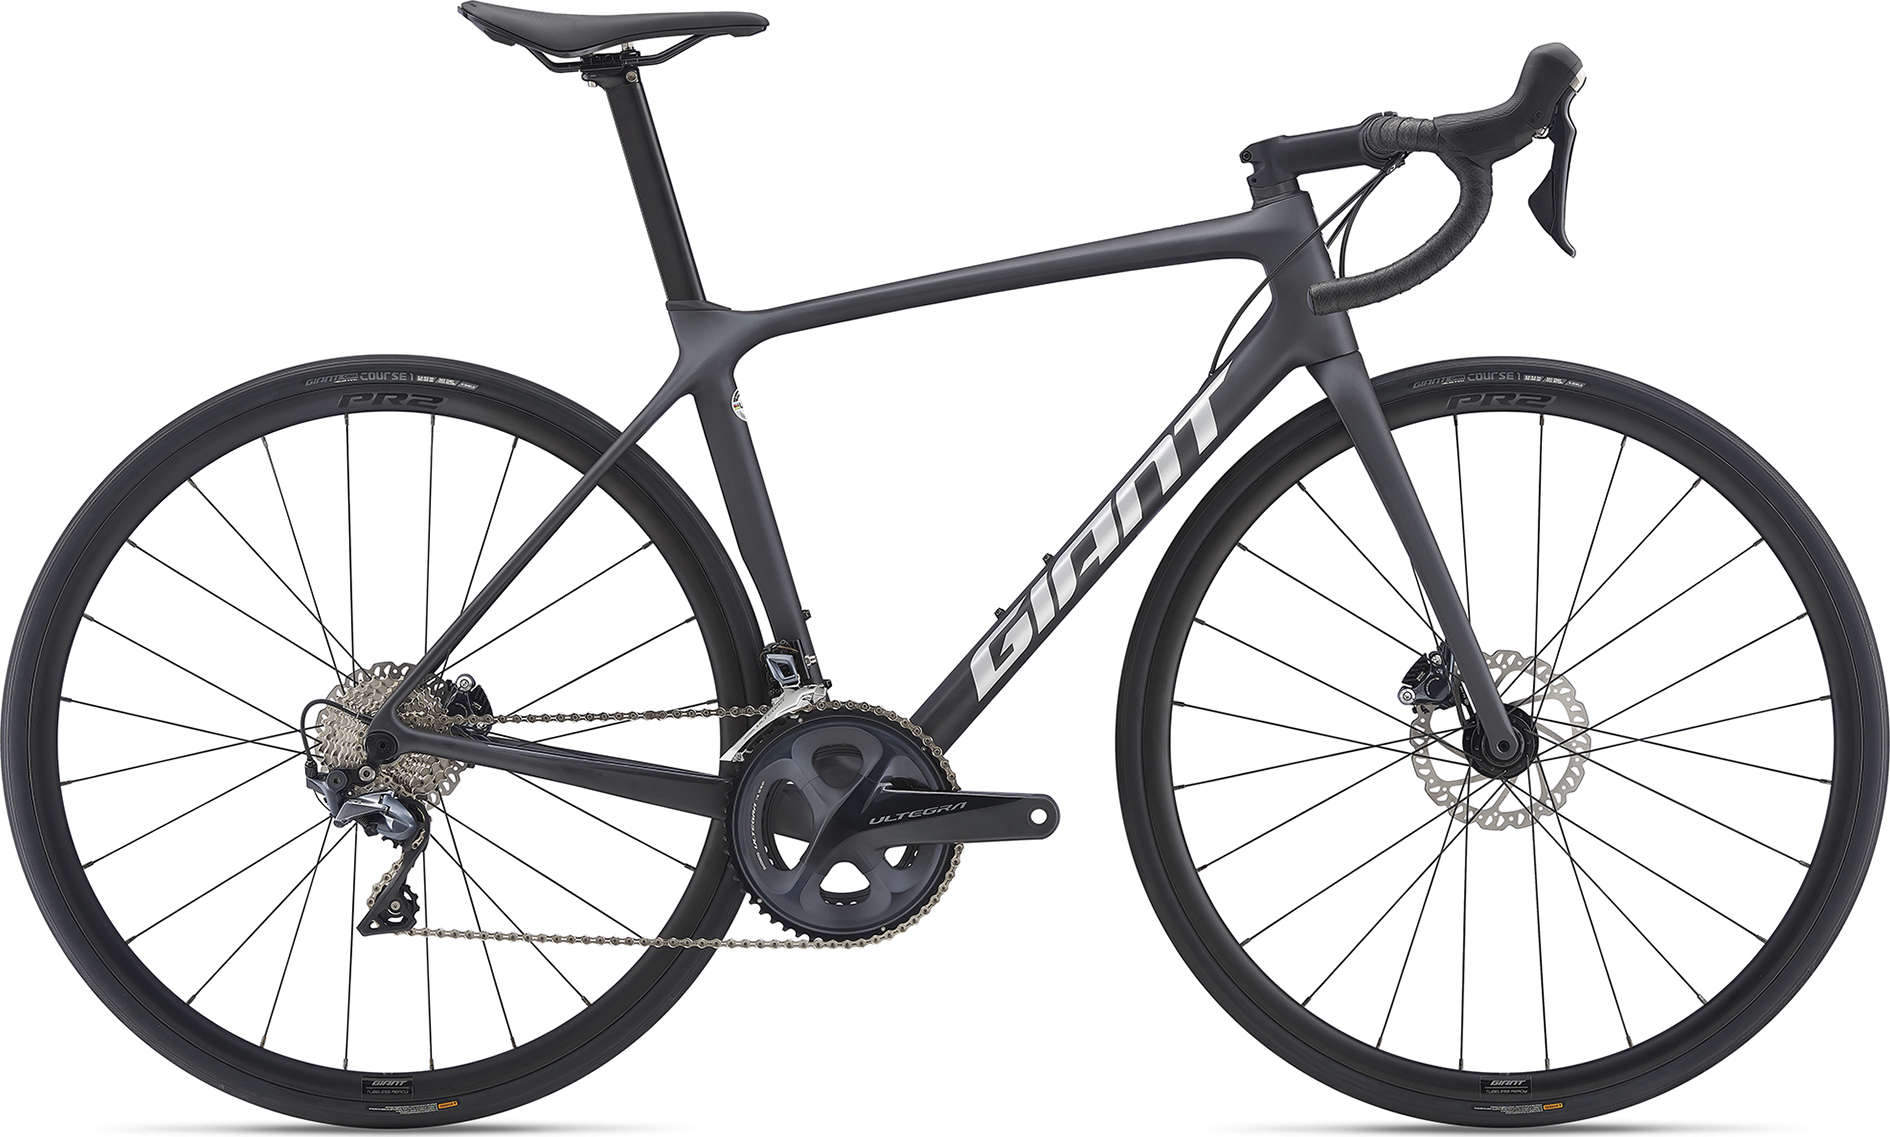 Bikeline_Berlin_Giant_TCR_ADV1_Disc_MY21